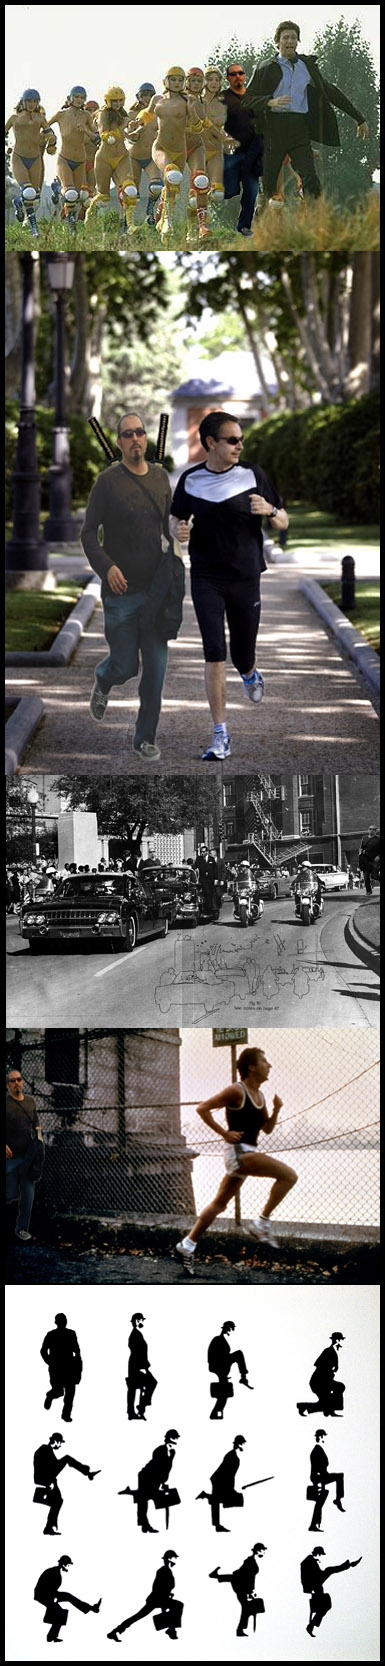 running, hermanisisimo,silly walk, monty python,meme